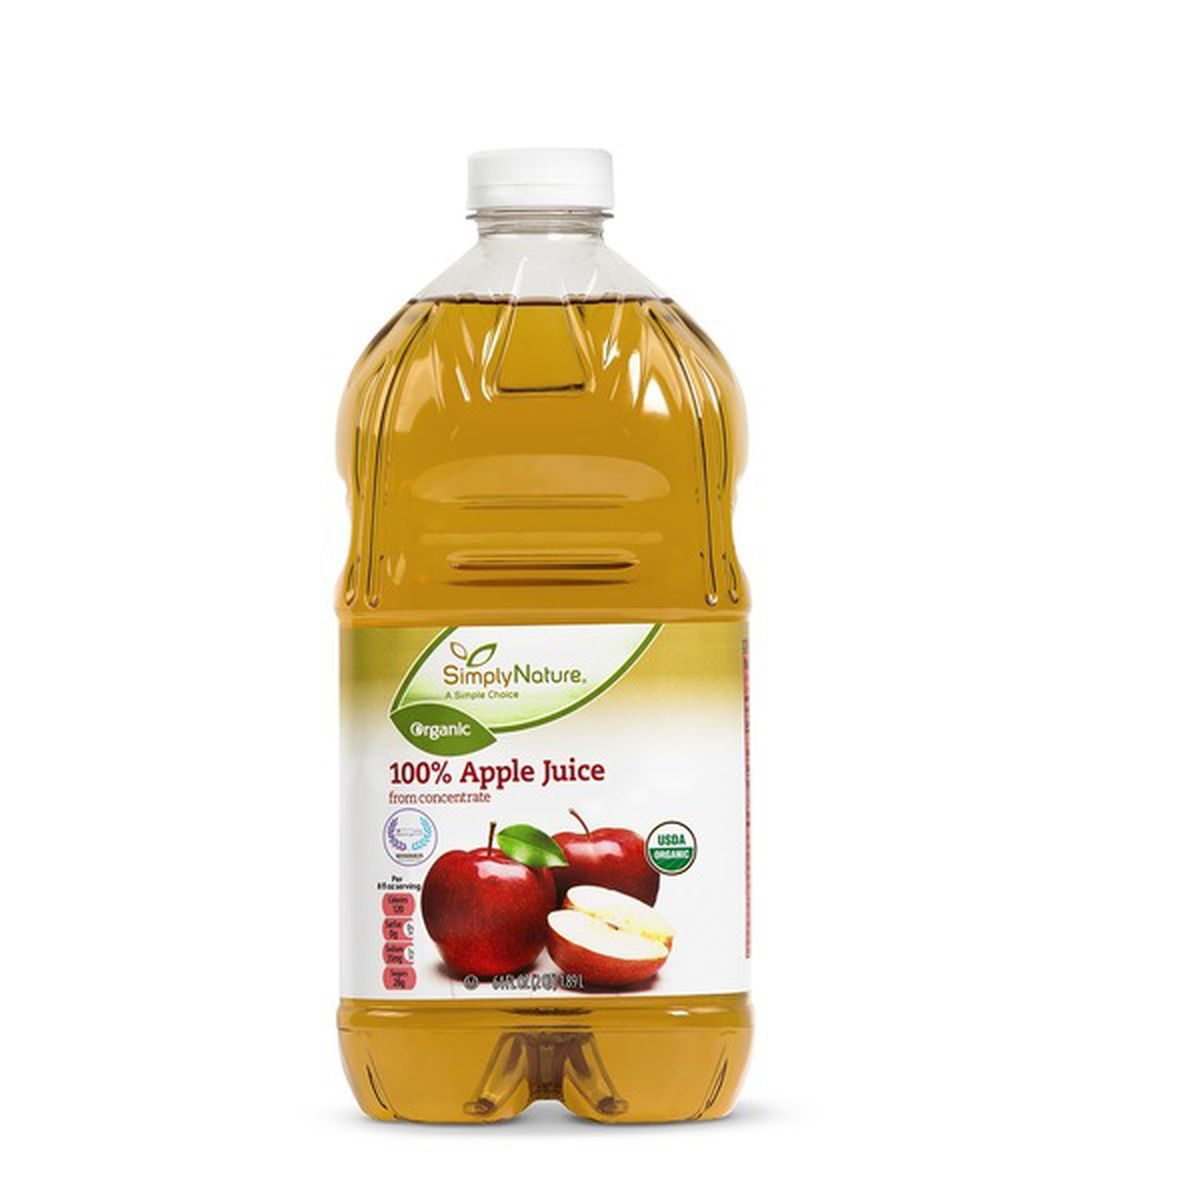 100% Apple Juice - Organic